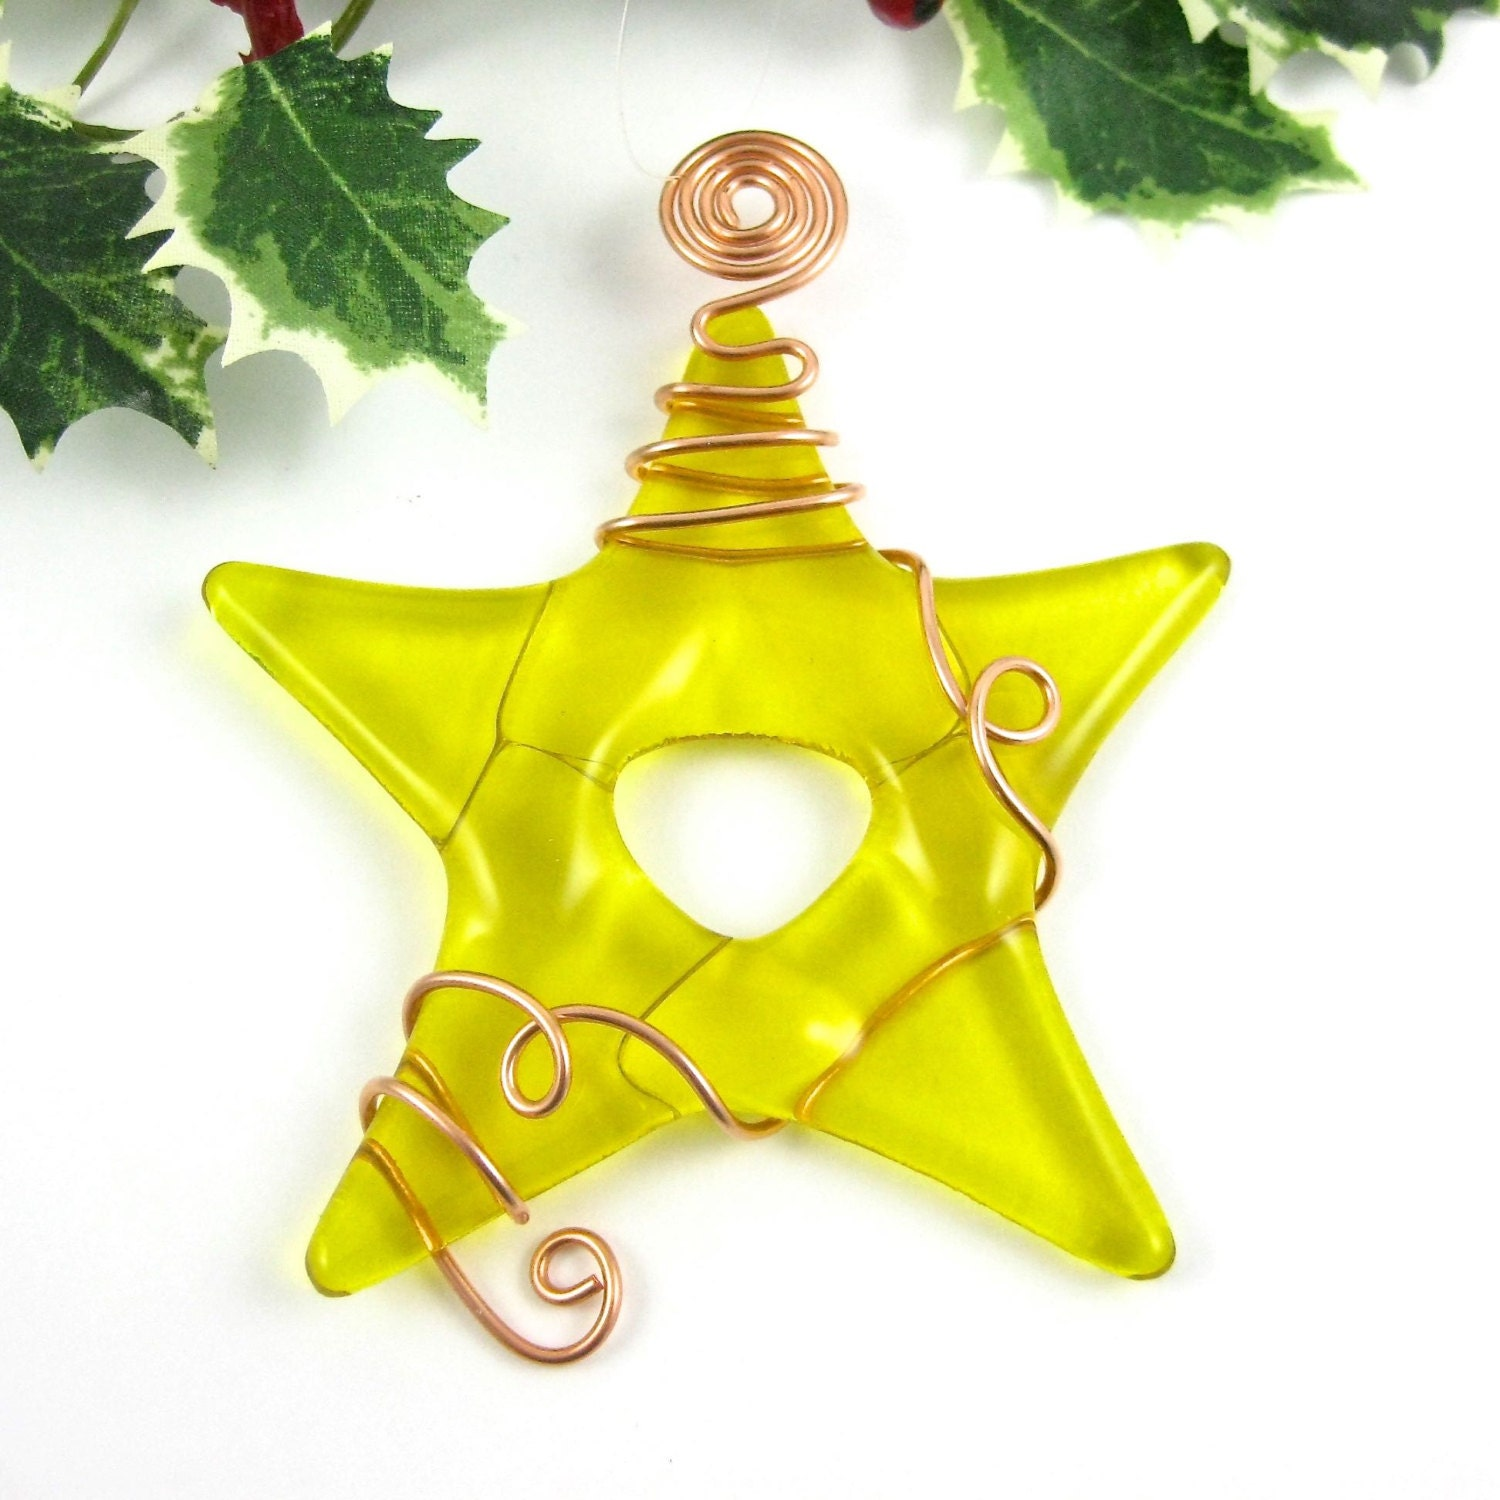 Christmas ornament yellow glass star by dpholkdesigns